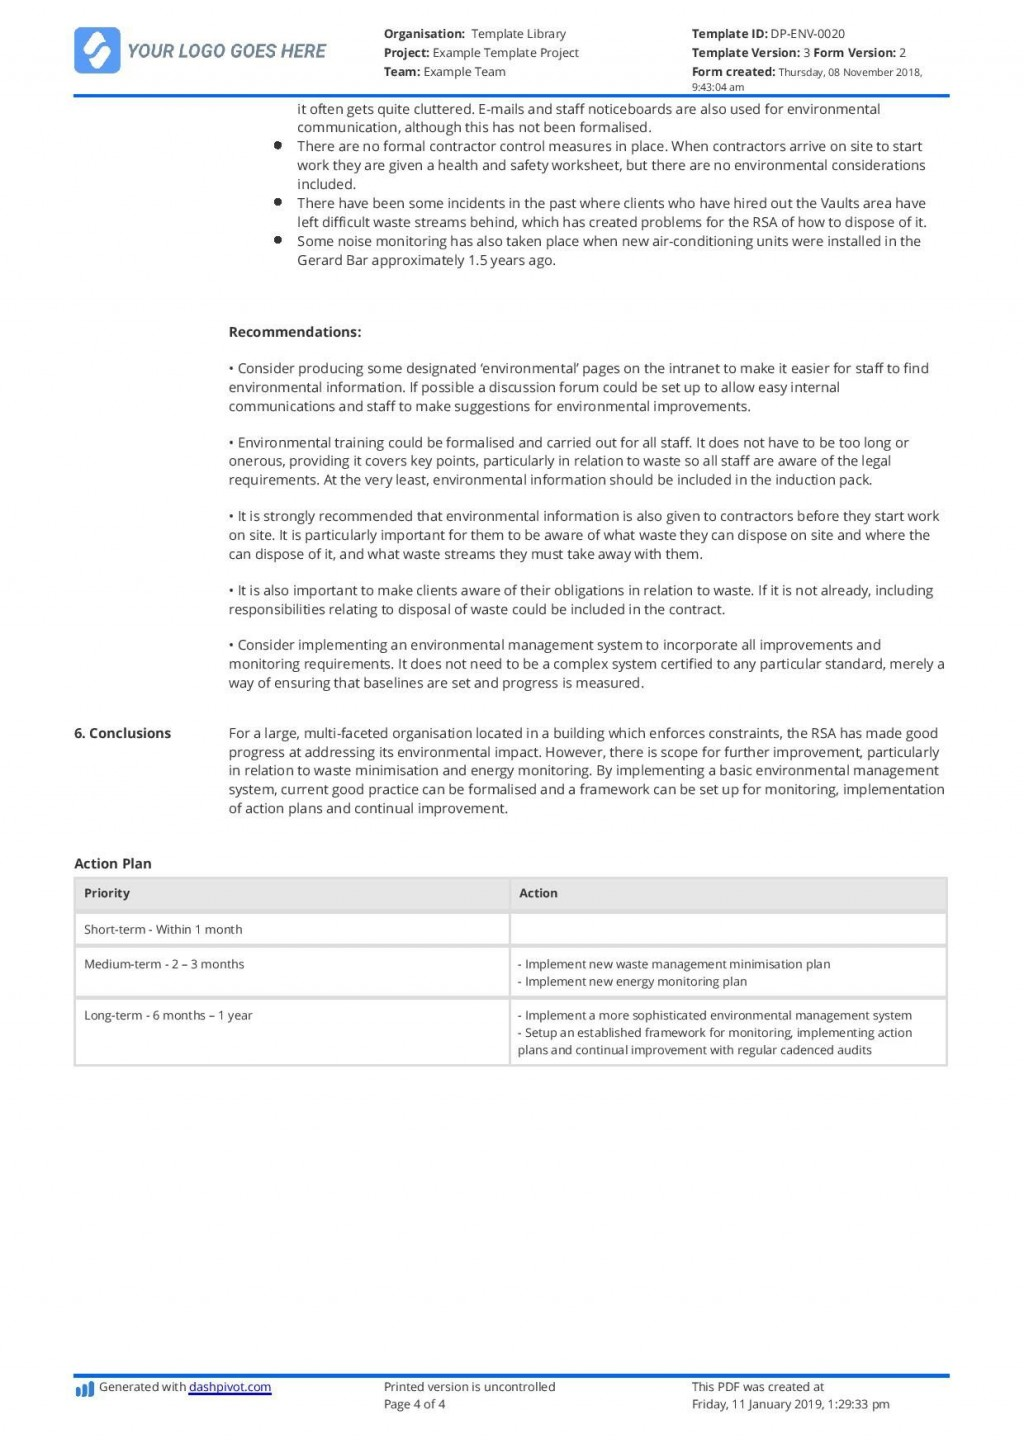 003 Amazing Internal Audit Report Template High Def  Powerpoint Format In Word Download FreeLarge